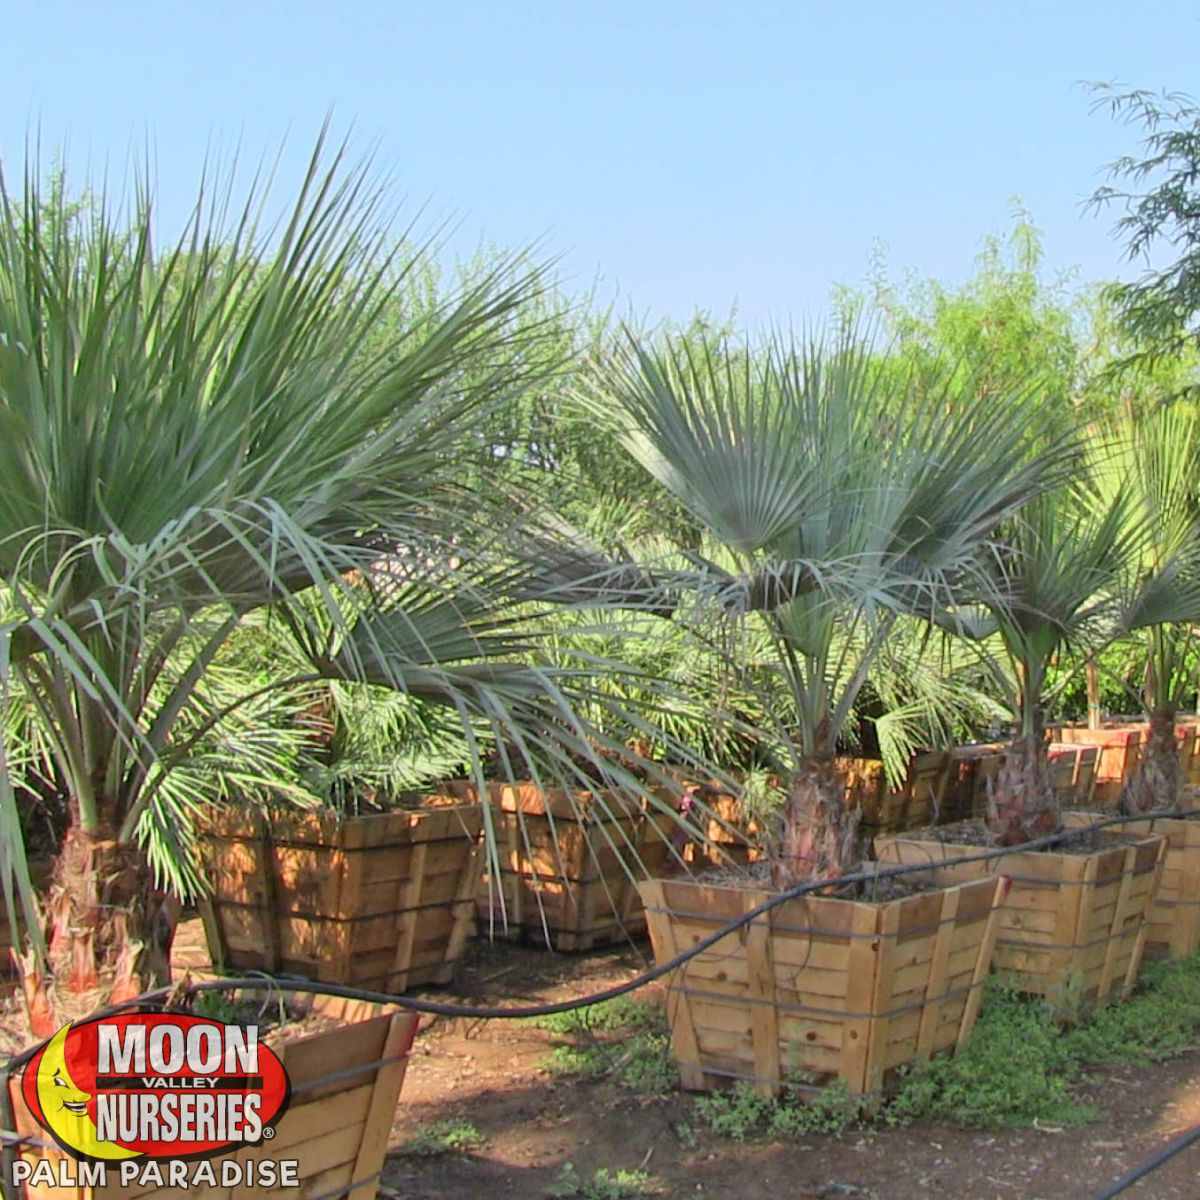 Mexican Blue Fan Palm Palm Tree Palm Paradise Nursery